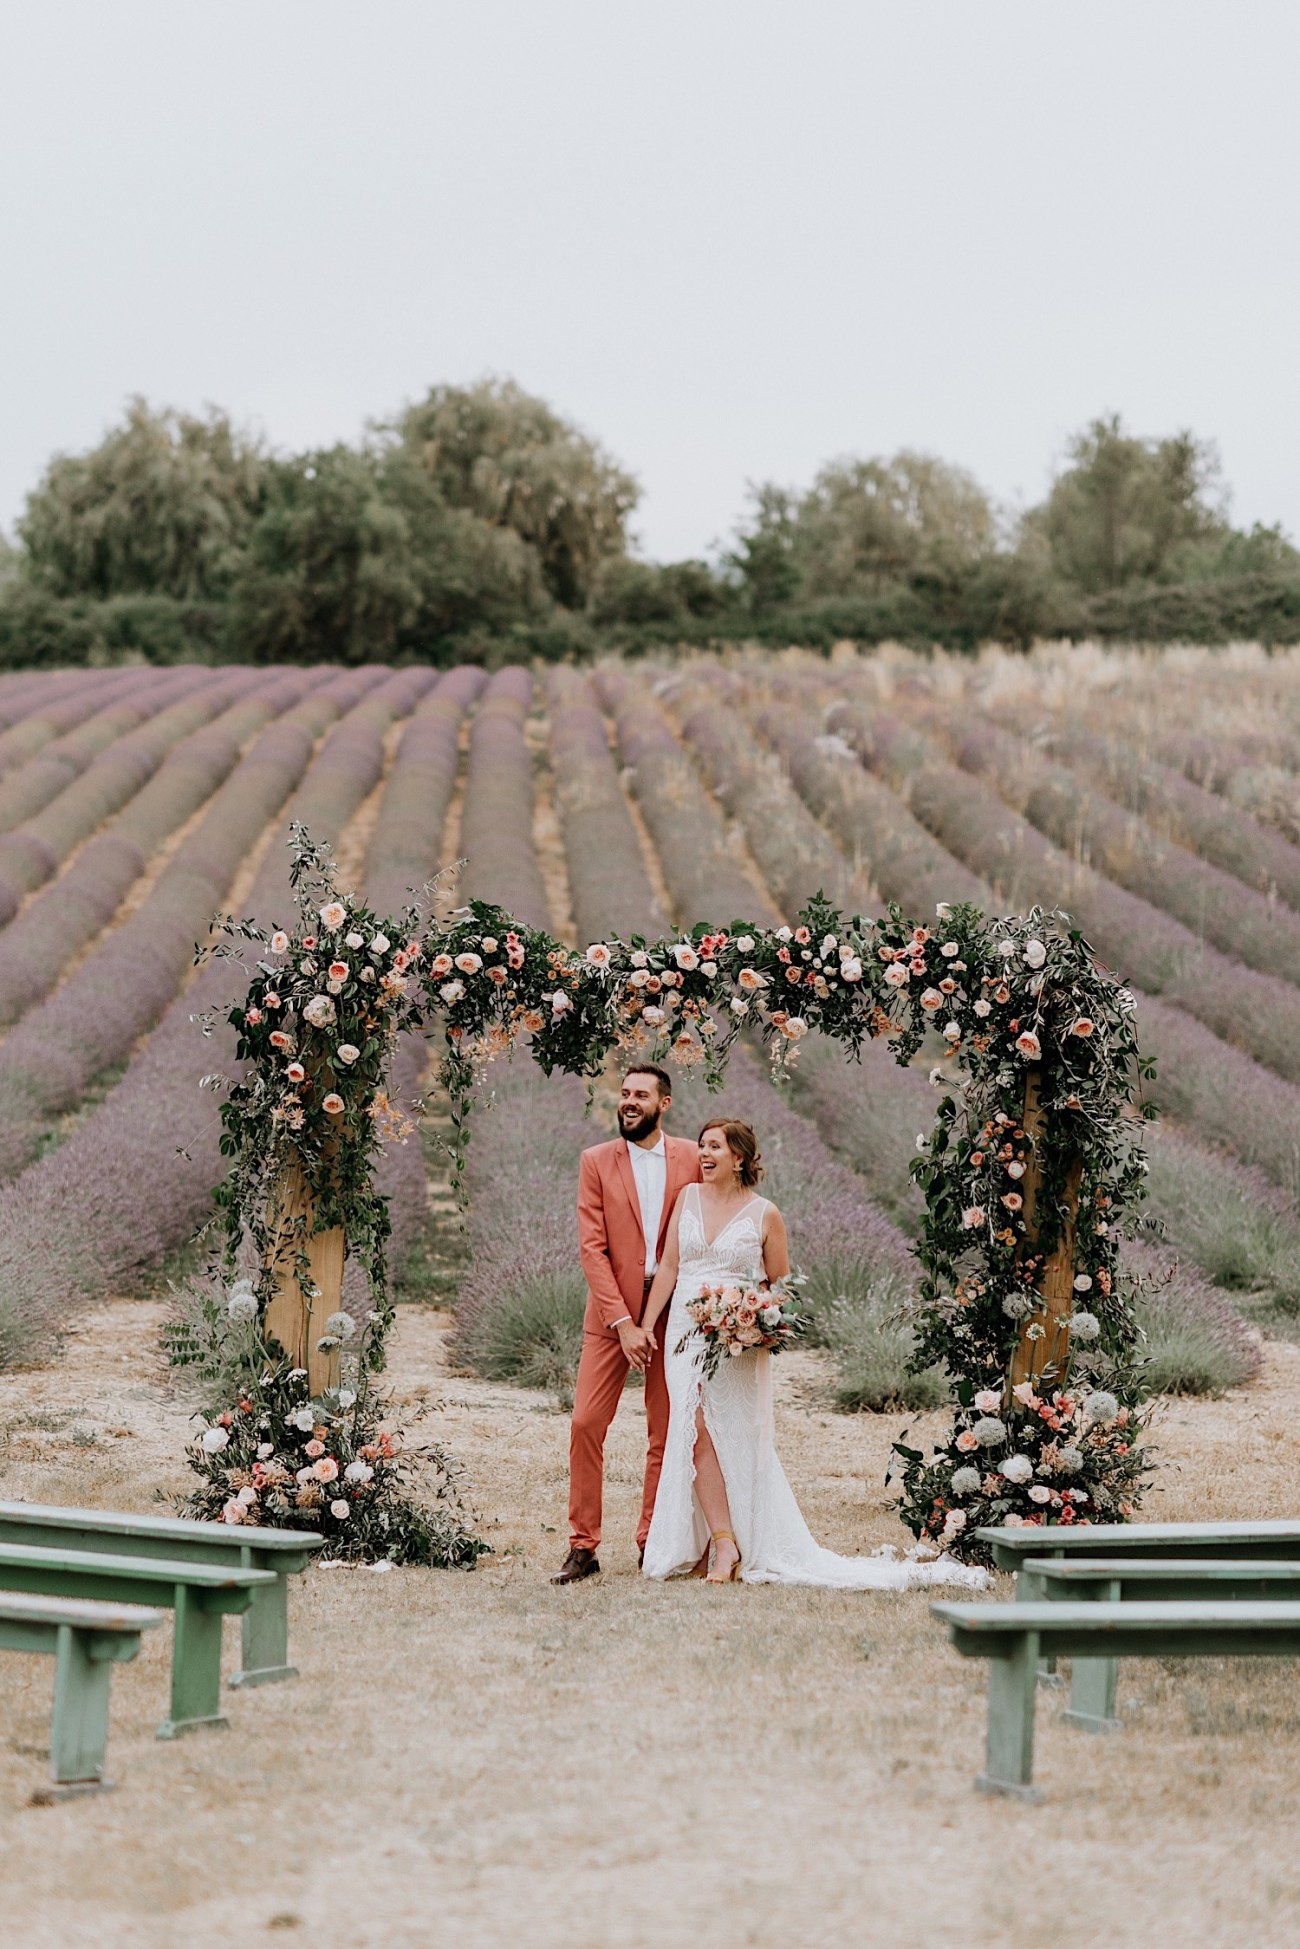 Terre Ugo Un Marriage En Provence Lavender Field Wedding French Wedding Provence Wedding Destination Wedding France Photographe De Marriage Provence France Anais Possamai Photography 23